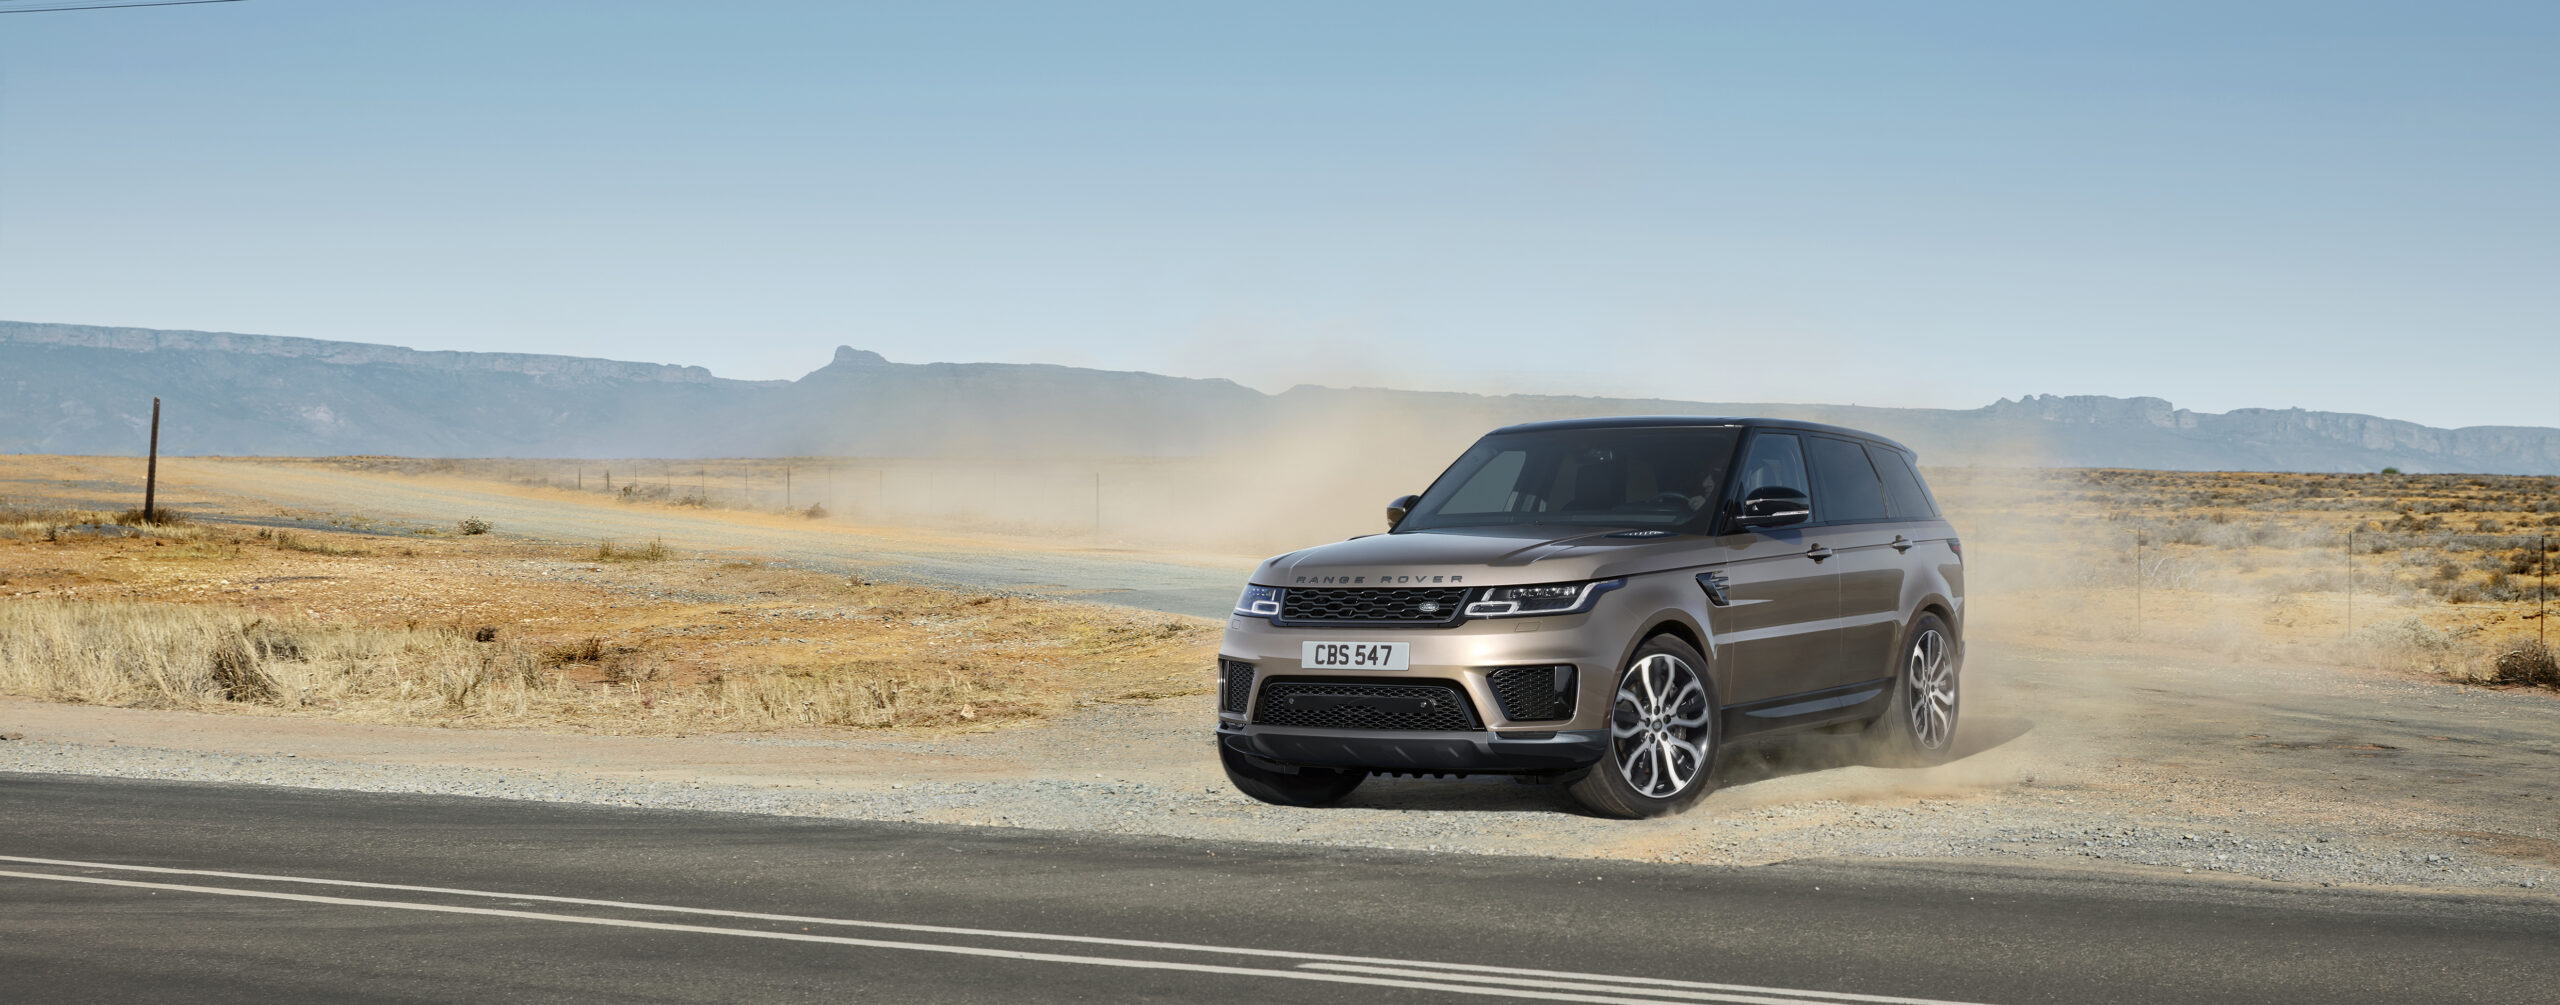 Range Rover SPORT HSE SILVER EDITION